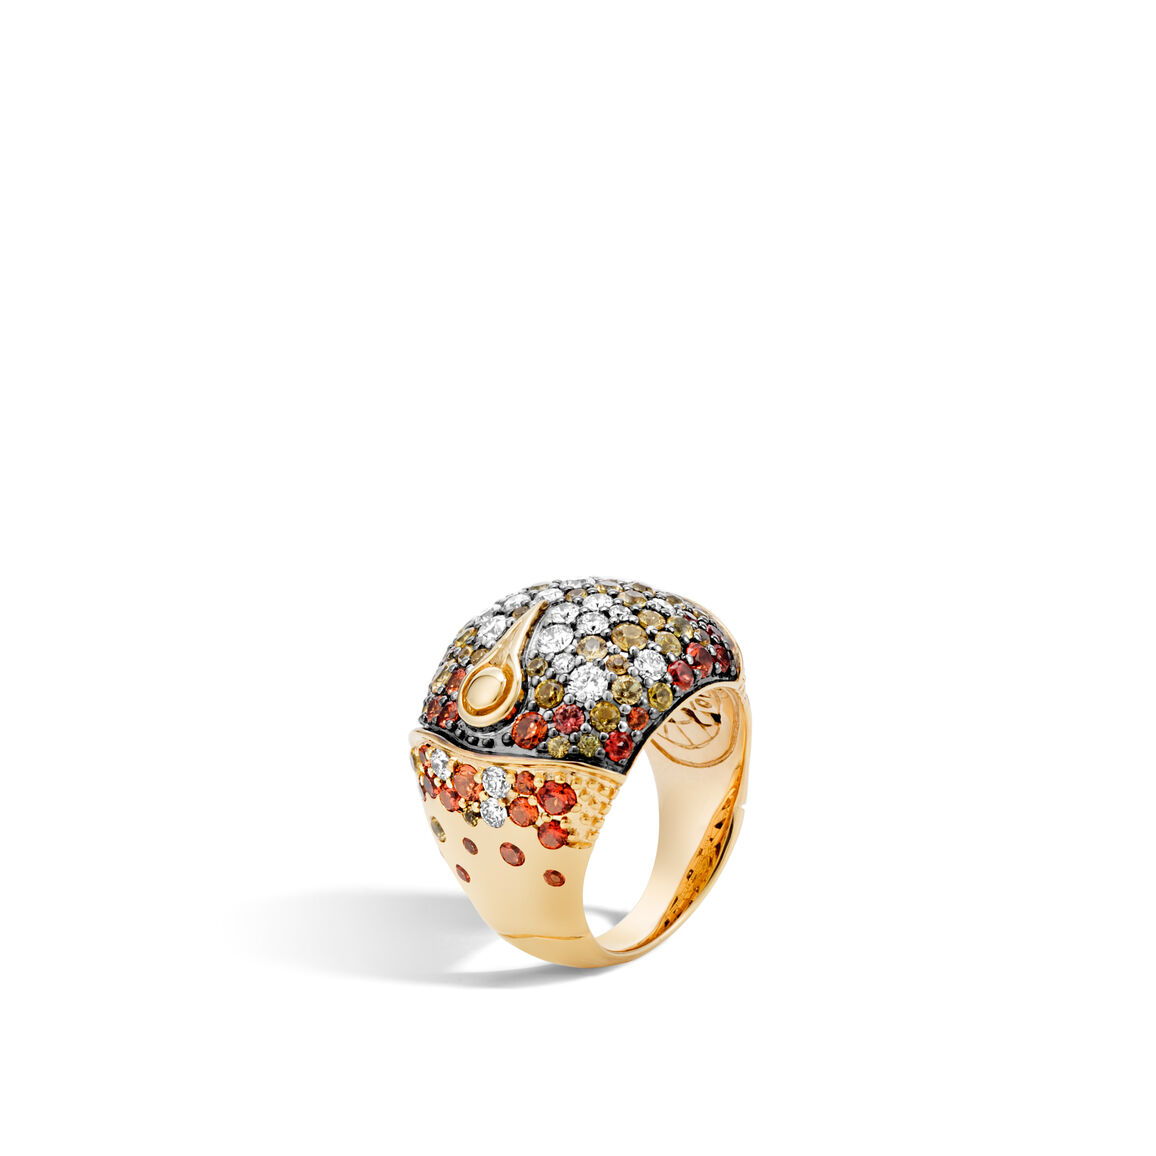 Bamboo Dome Ring in 18K Gold with Gemstone and Diamonds